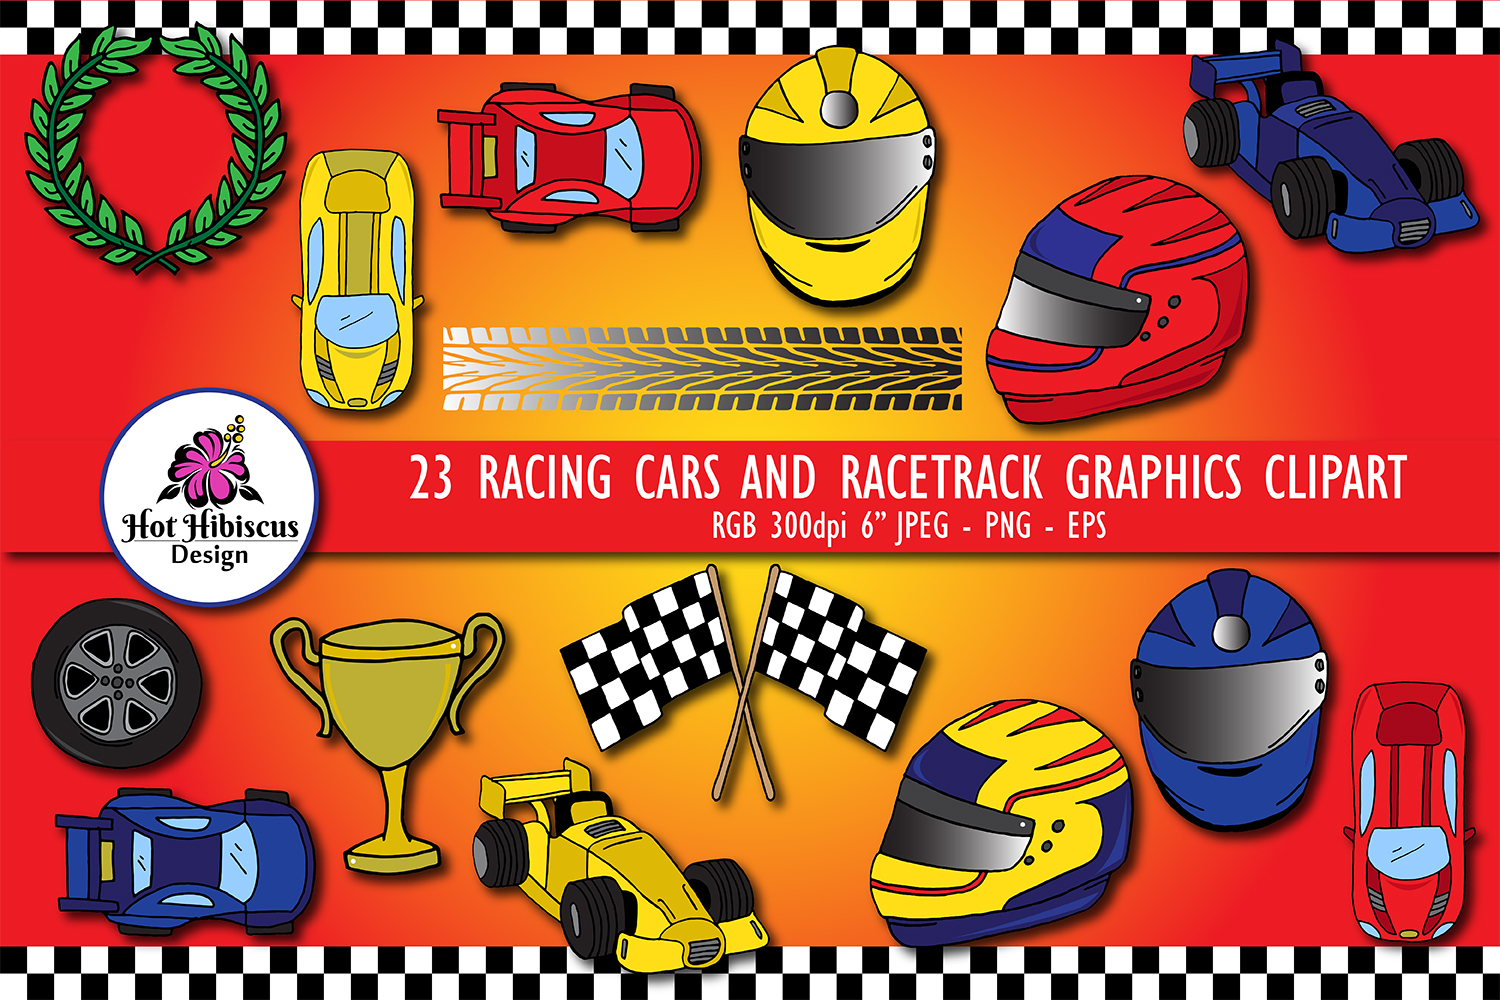 23 Racing Cars and Racetrack Graphics Illustrations Clipart example image 1